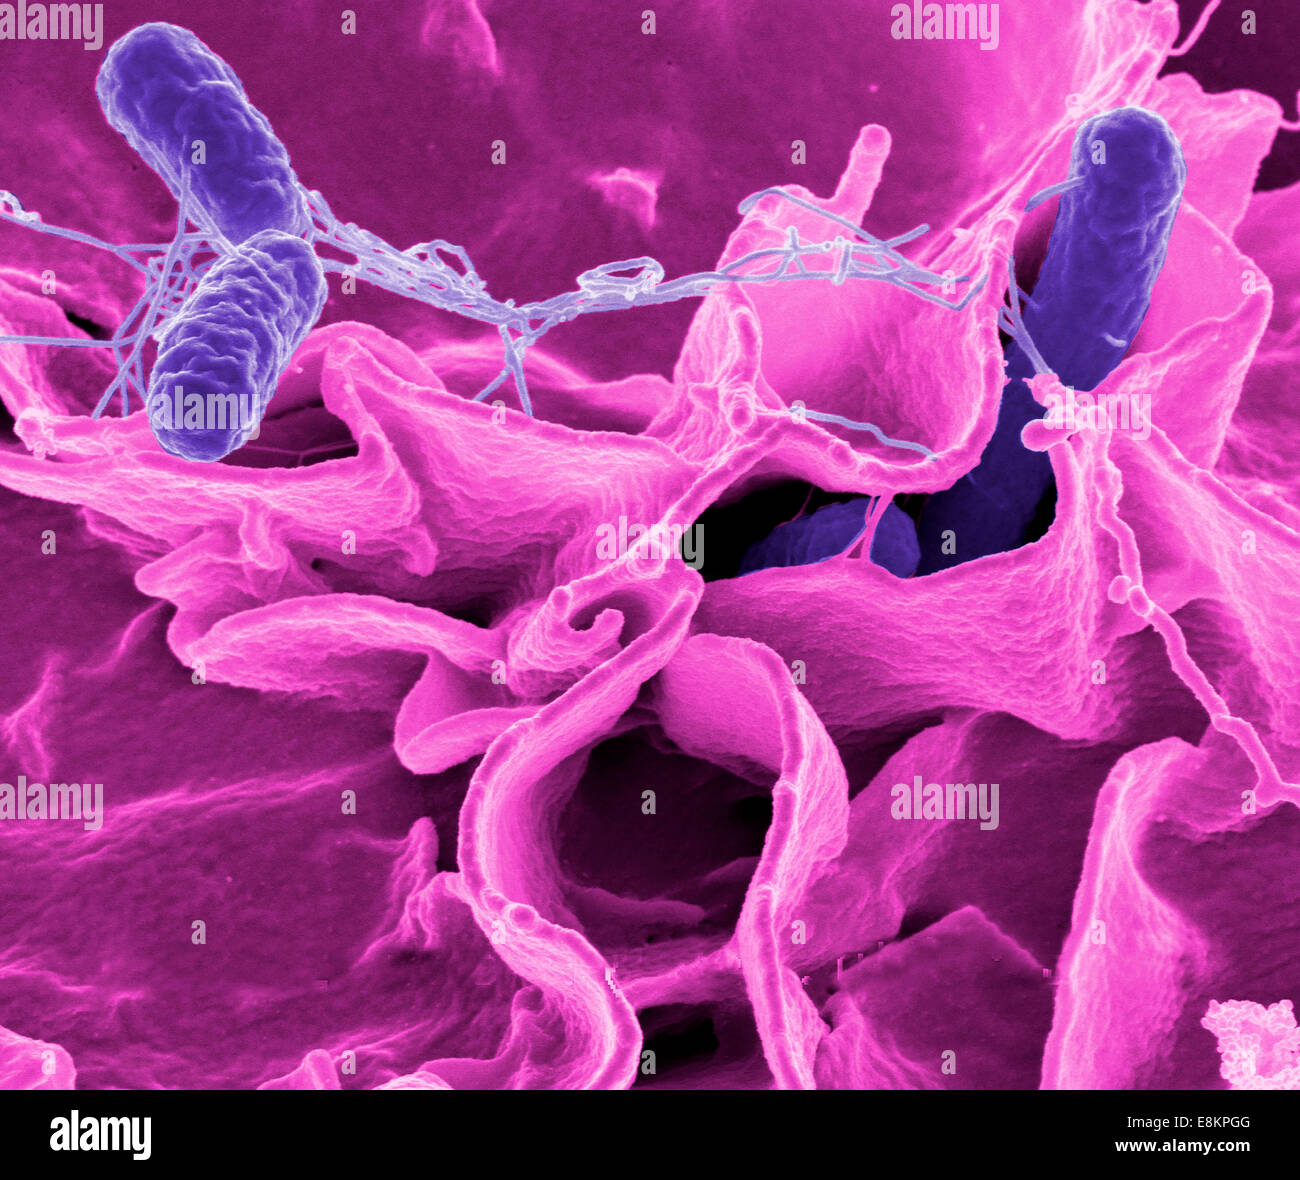 Salmonella bacteria, a common cause of food poisoning, invade an immune cell. - Stock Image